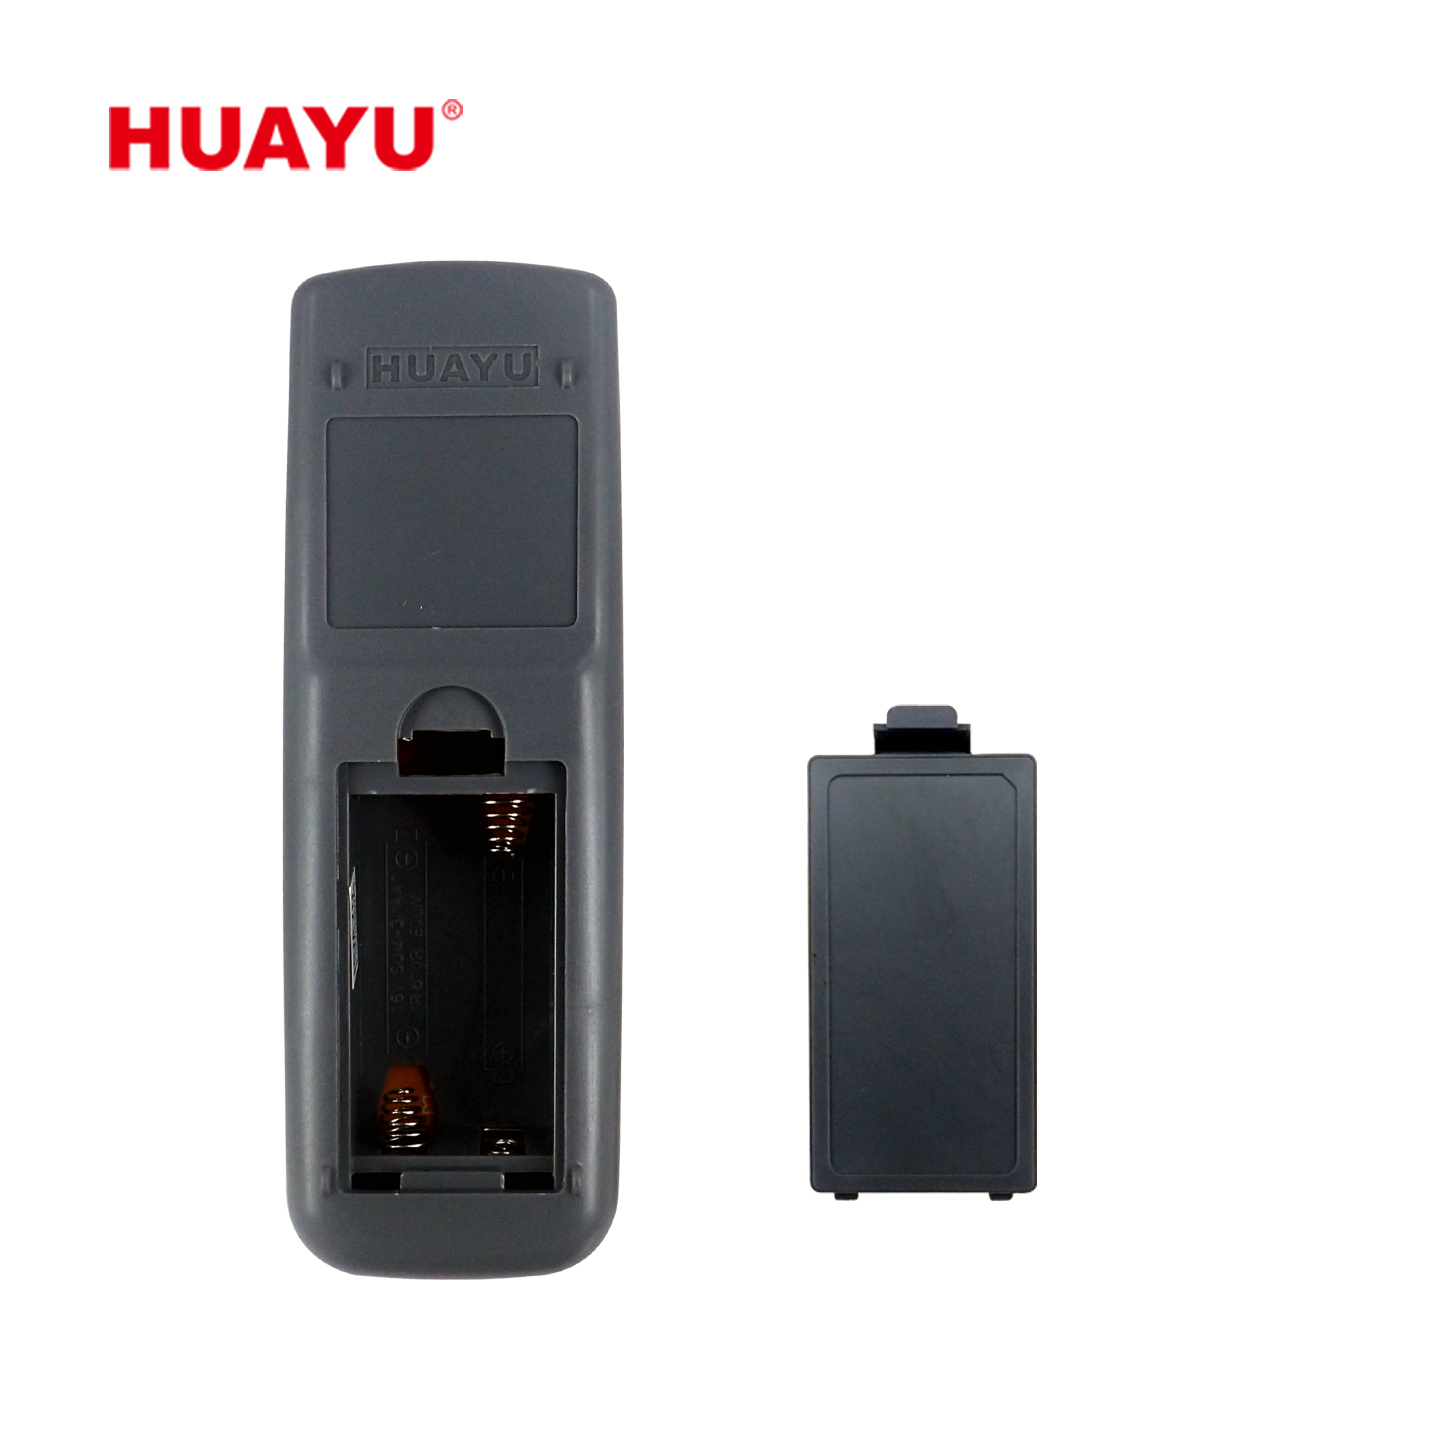 RM-026G (box) USE FOR Sharp TV Remote Control丨HUAYU - CRT